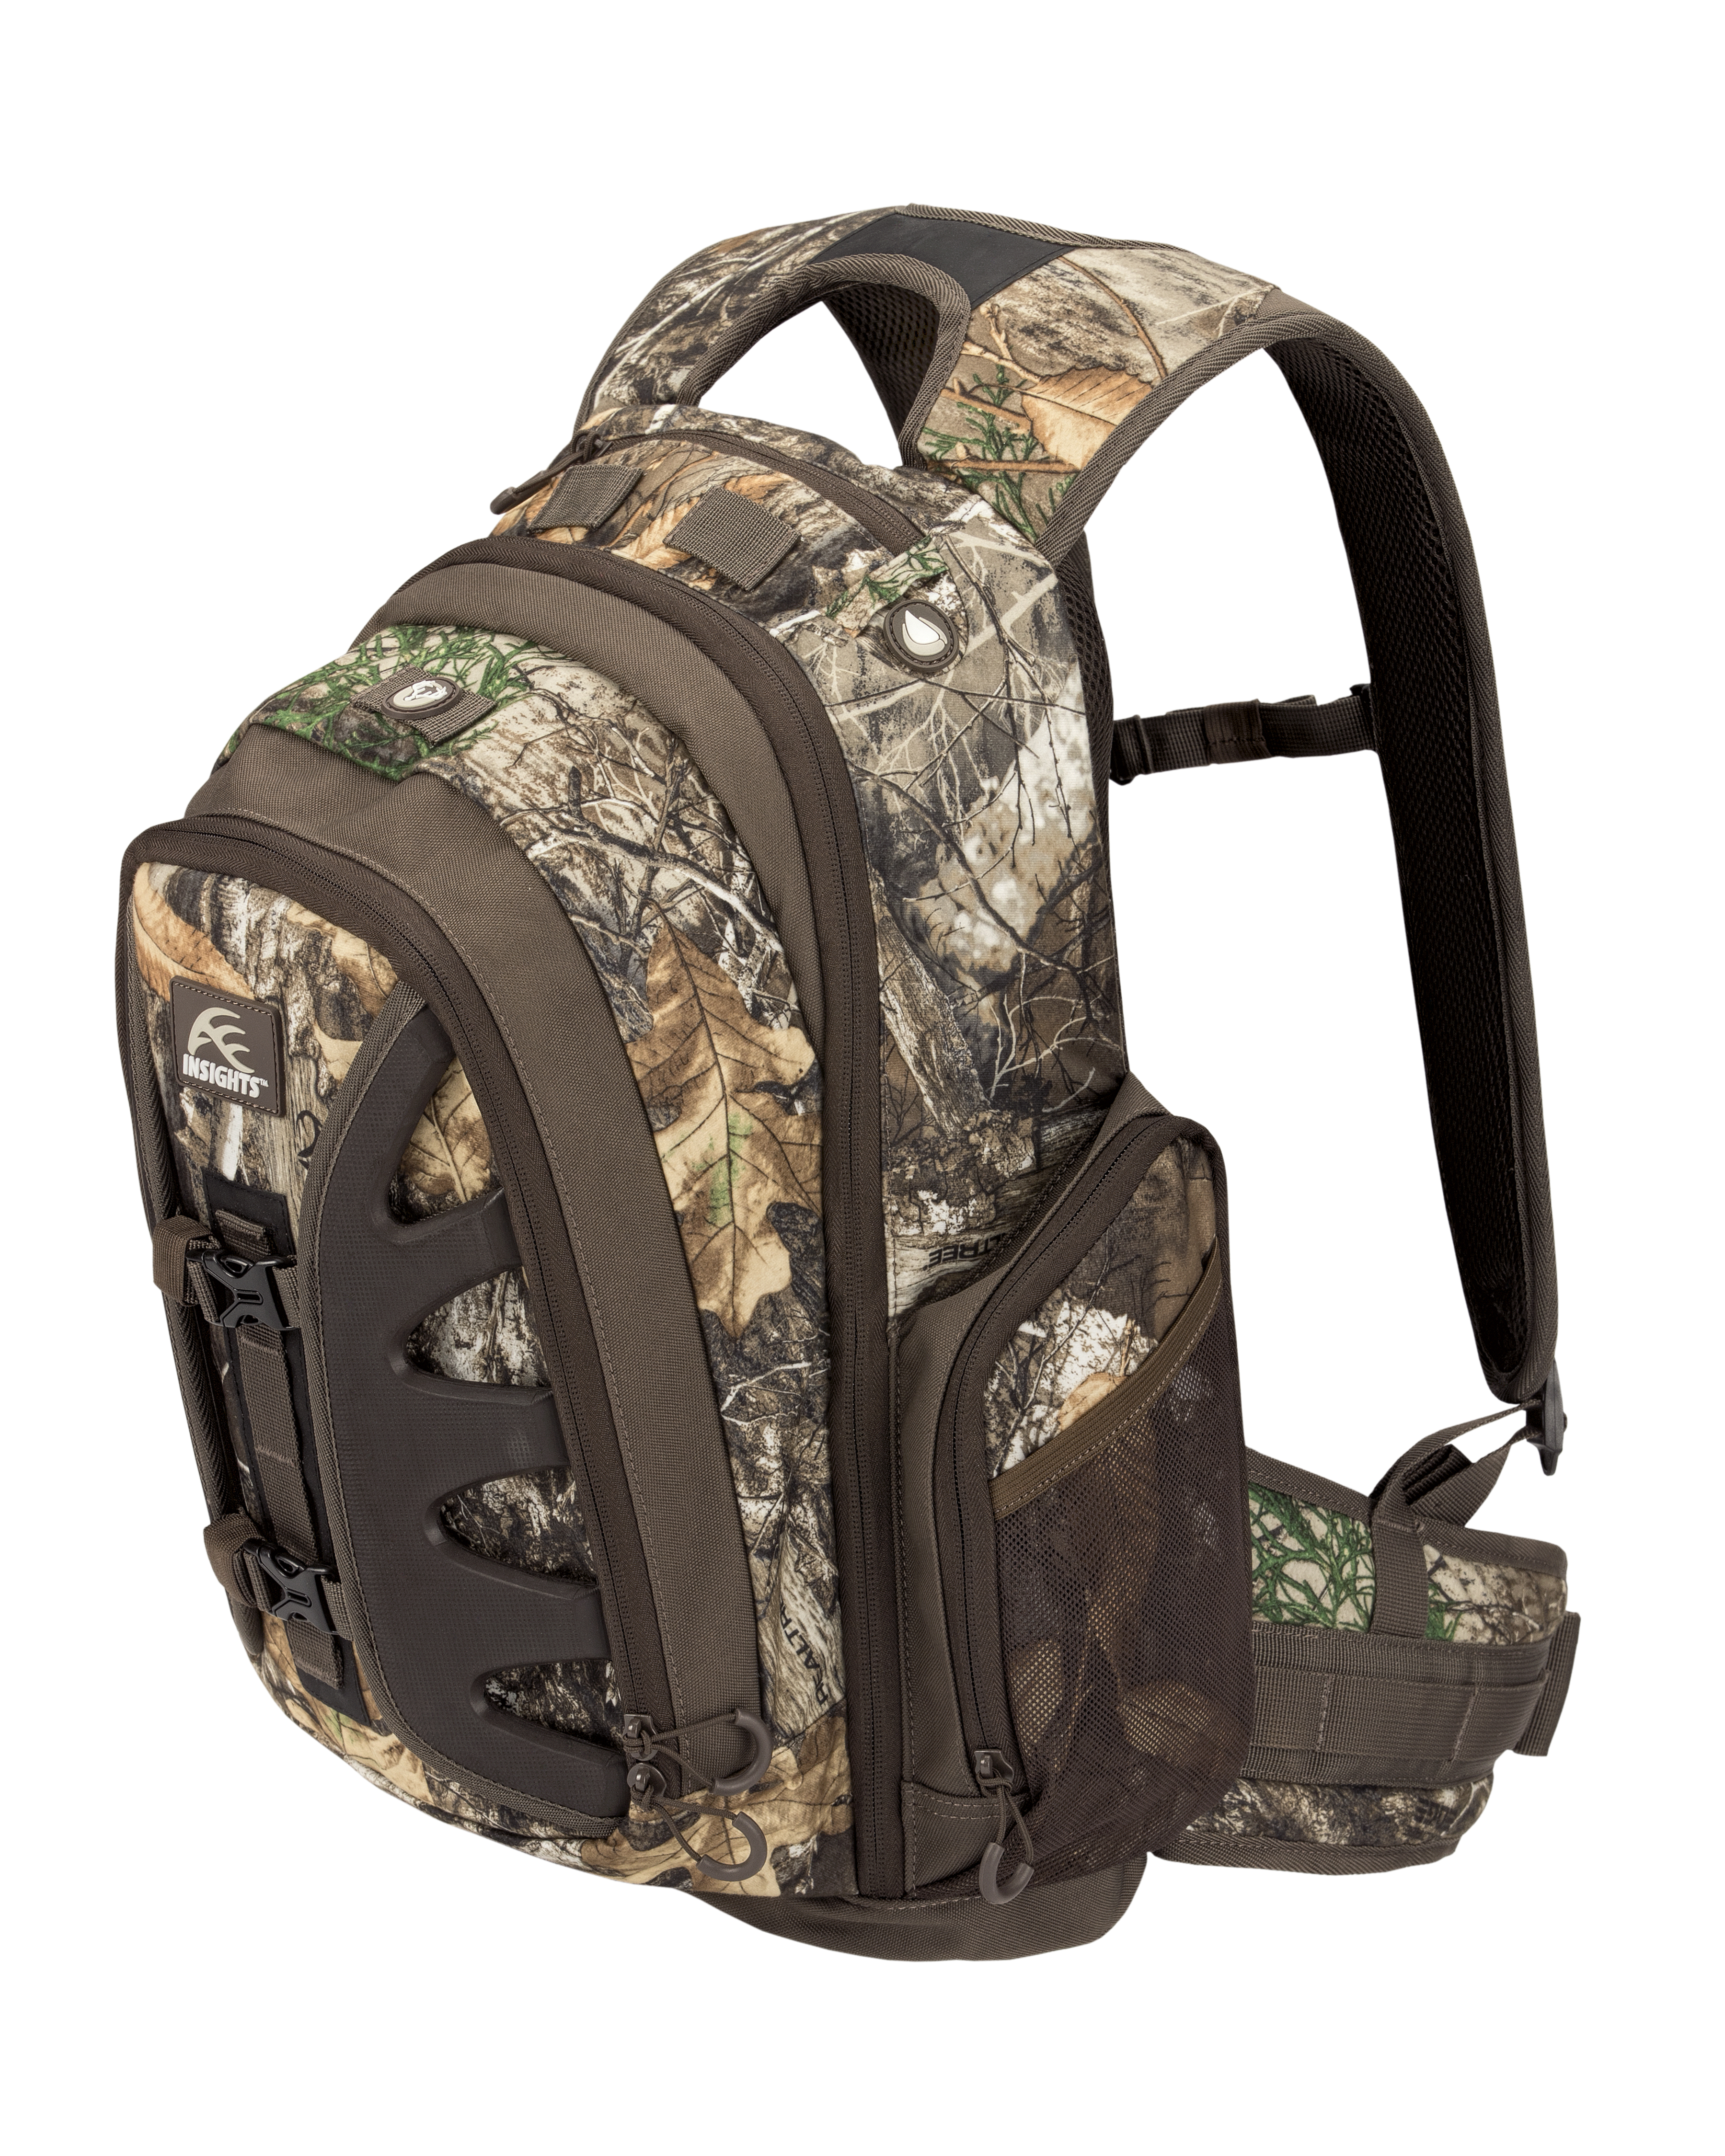 Insights Hunting The Element Lightweight Day Pack - Realtree Edge